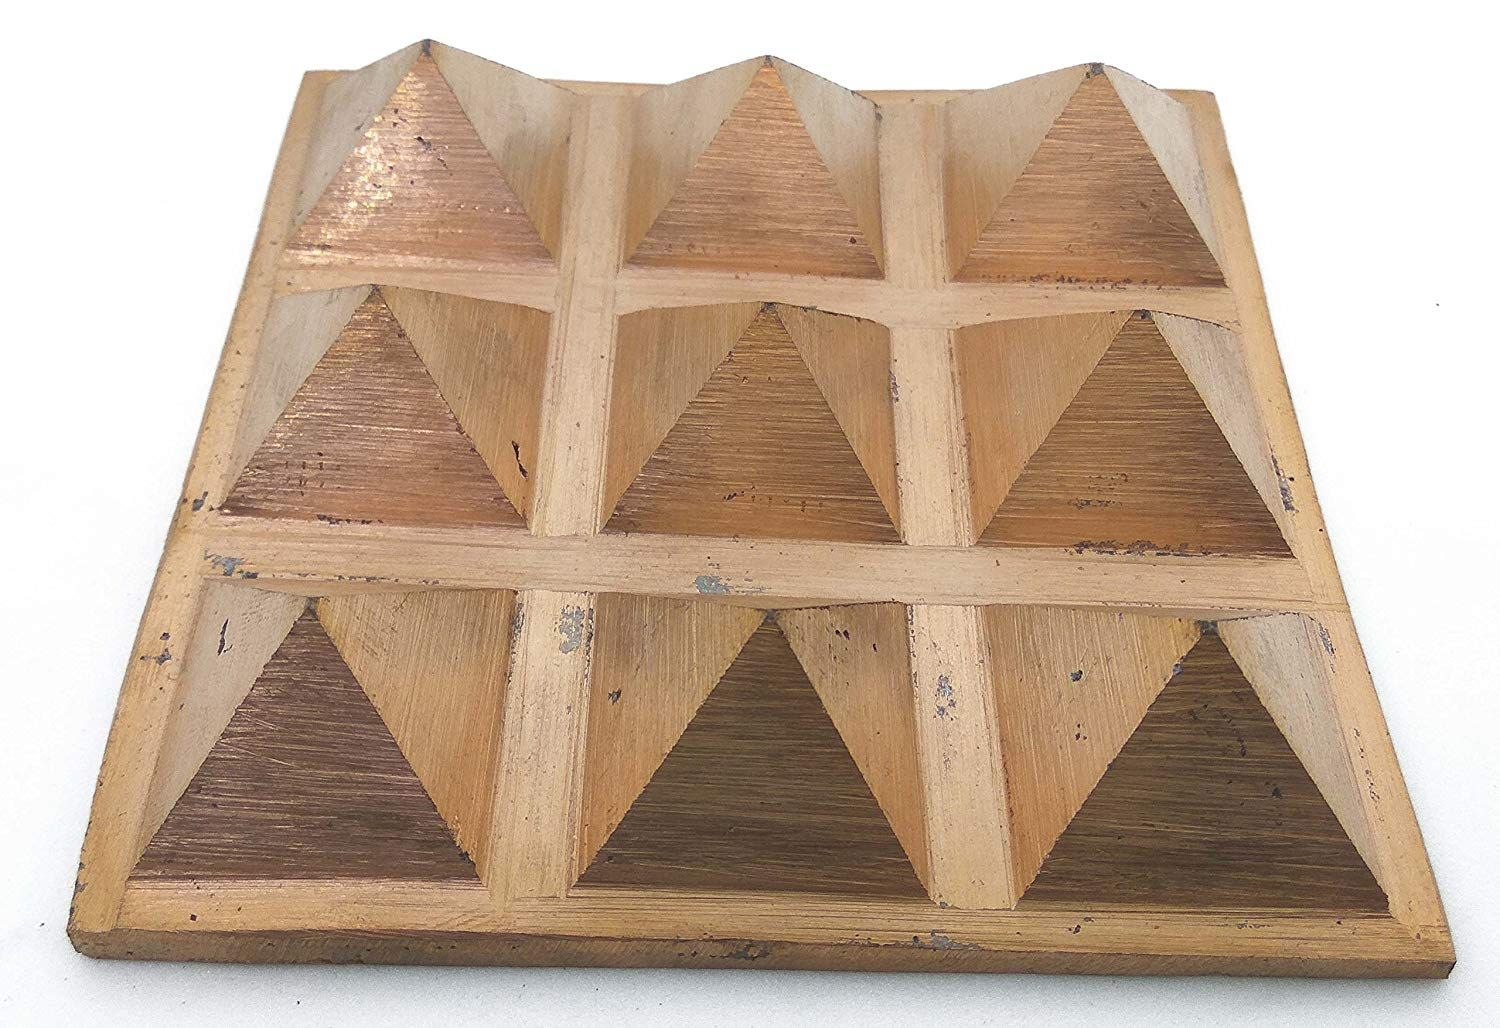 Copper Pyramid Chip Vastu Tool Discover Quick And Easy Ways To Control And Use The World S Oldest Success Tool Vast Money Frame Copper Pyramid Pyramids